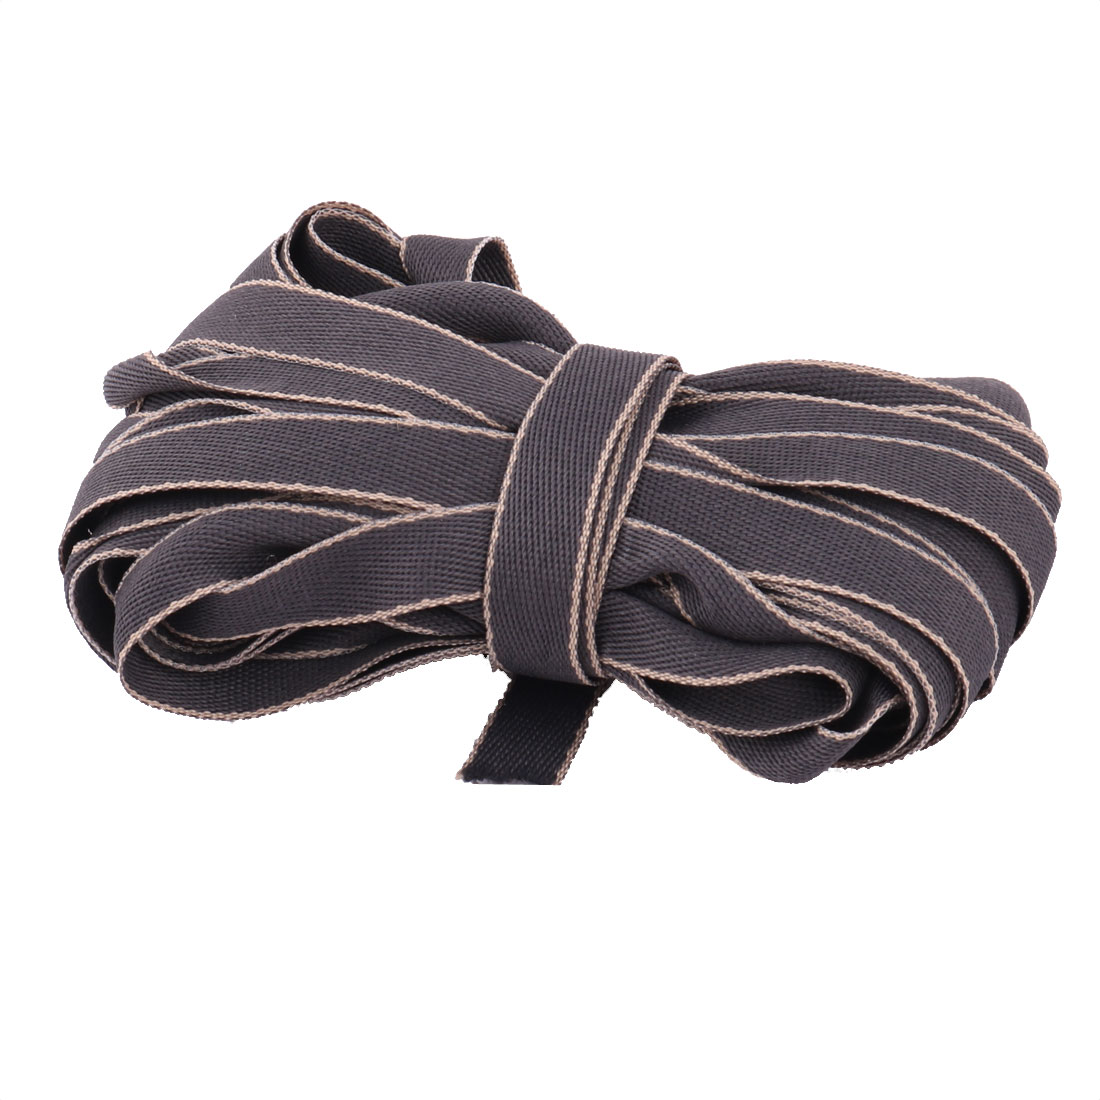 Celebration DIY Craft Sewing T-shirt Hair Ribbon Dark Gray 1cm Width 10 Yards